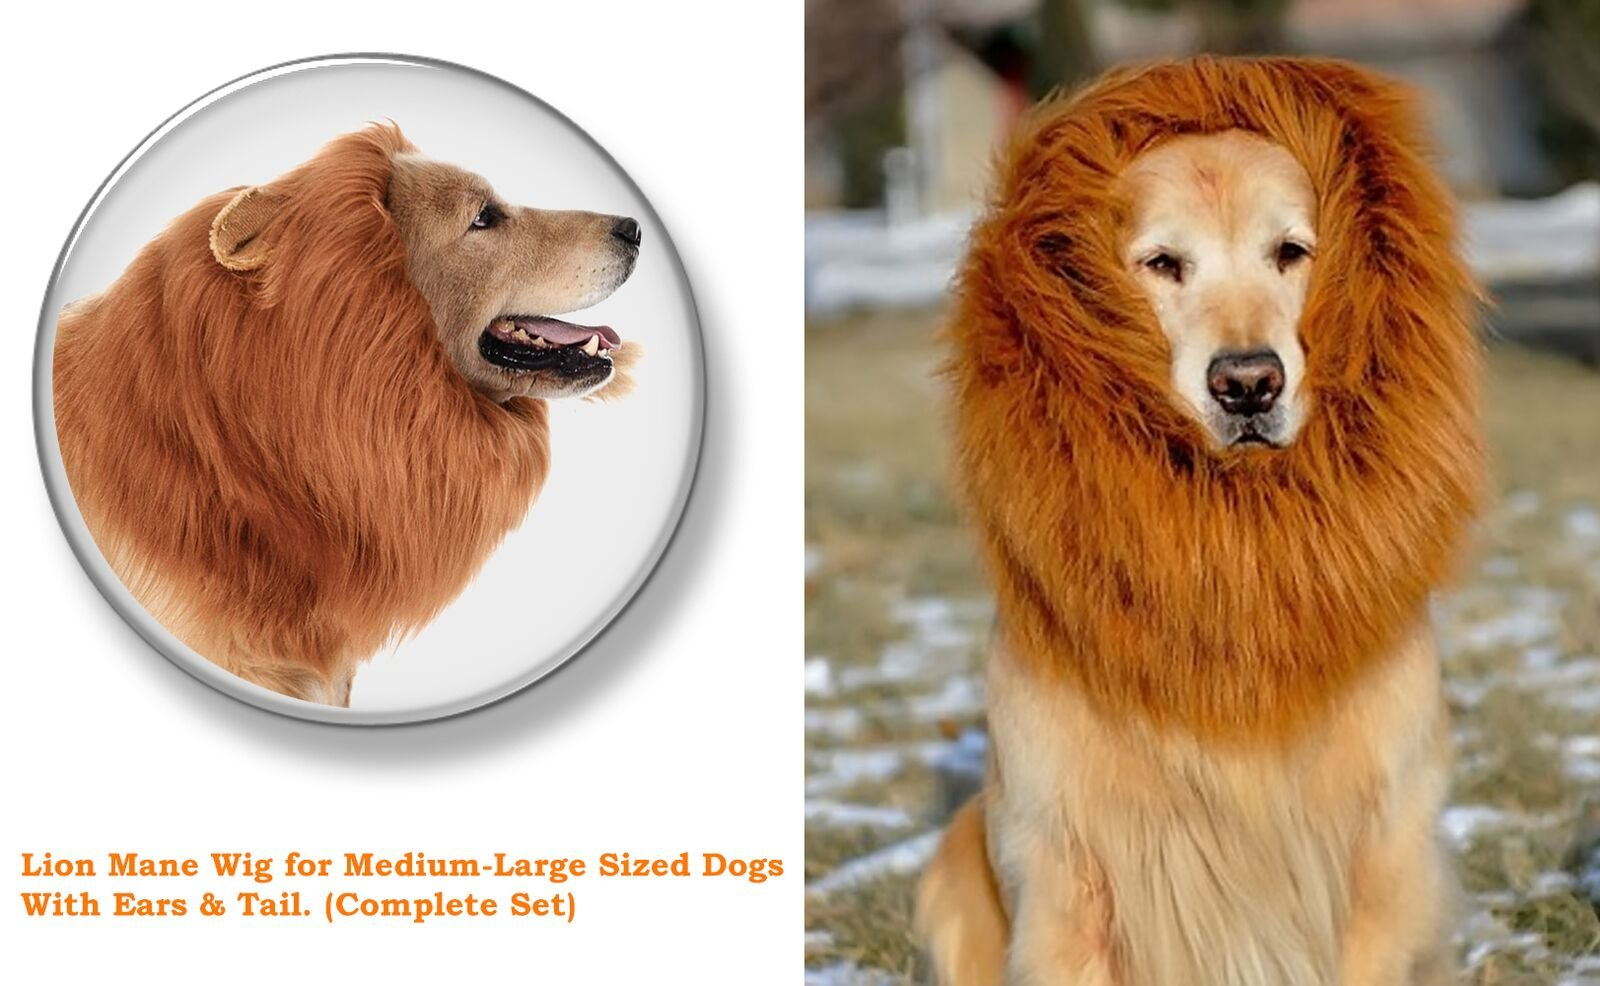 Lion Mane Costume for Medium-Large Size Dogs + 2 Bonus Dog Toys (L) + Lion Tail. A Perfect Party cosplay Halloween Wig Clothes Gift For Big Dog. Realistic,Comfortable, Funny, Washable Brown Lion Mane